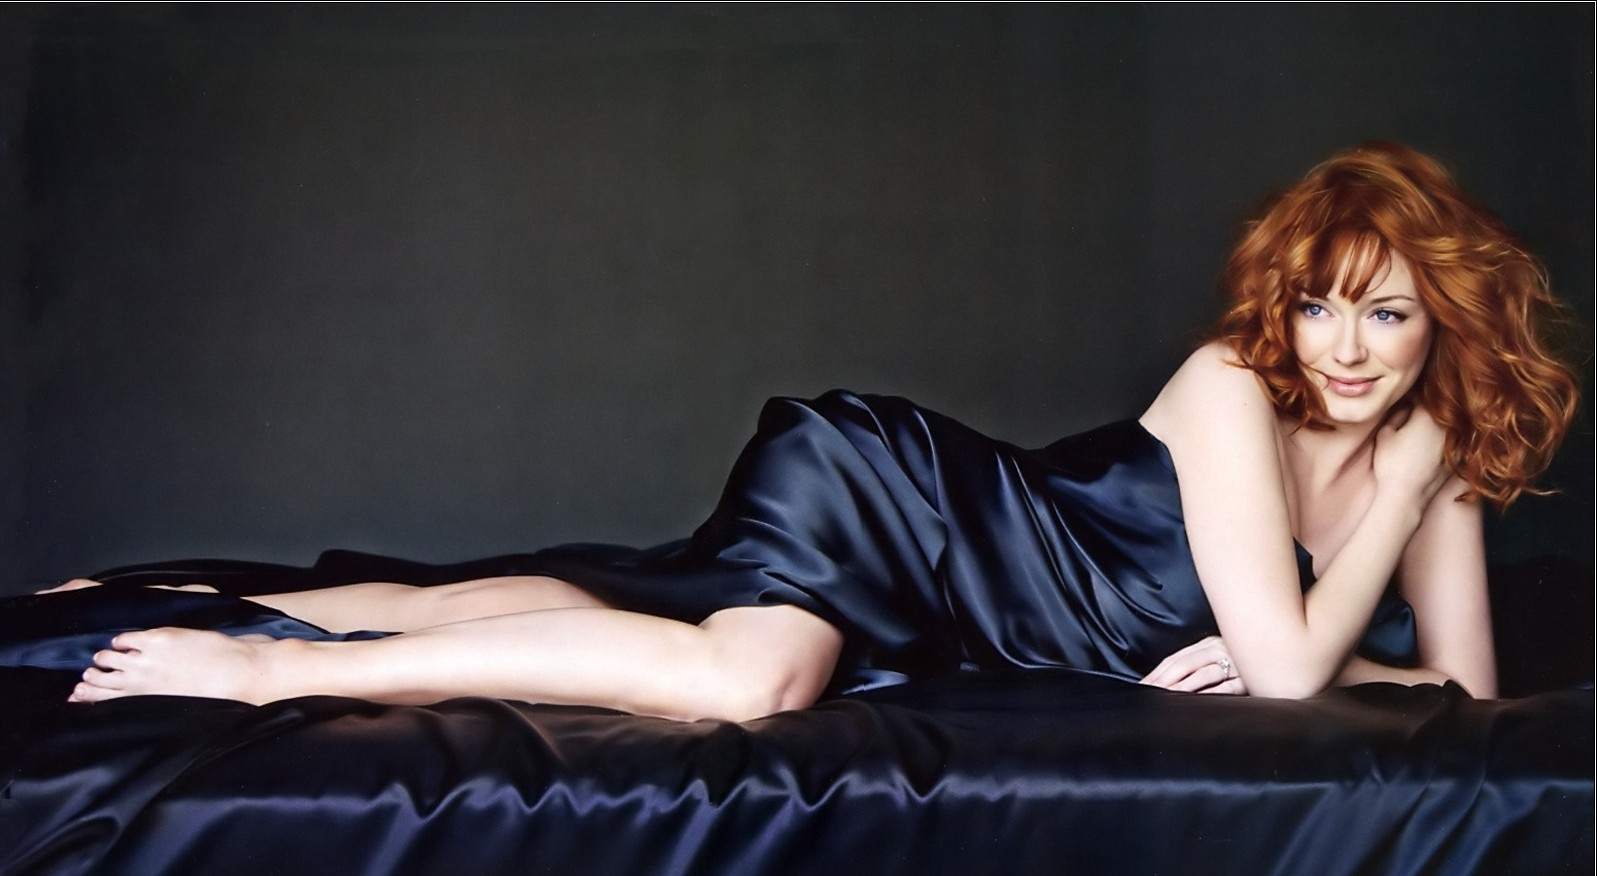 Christina Hendricks Hot Pics, Videos And Sexy Images